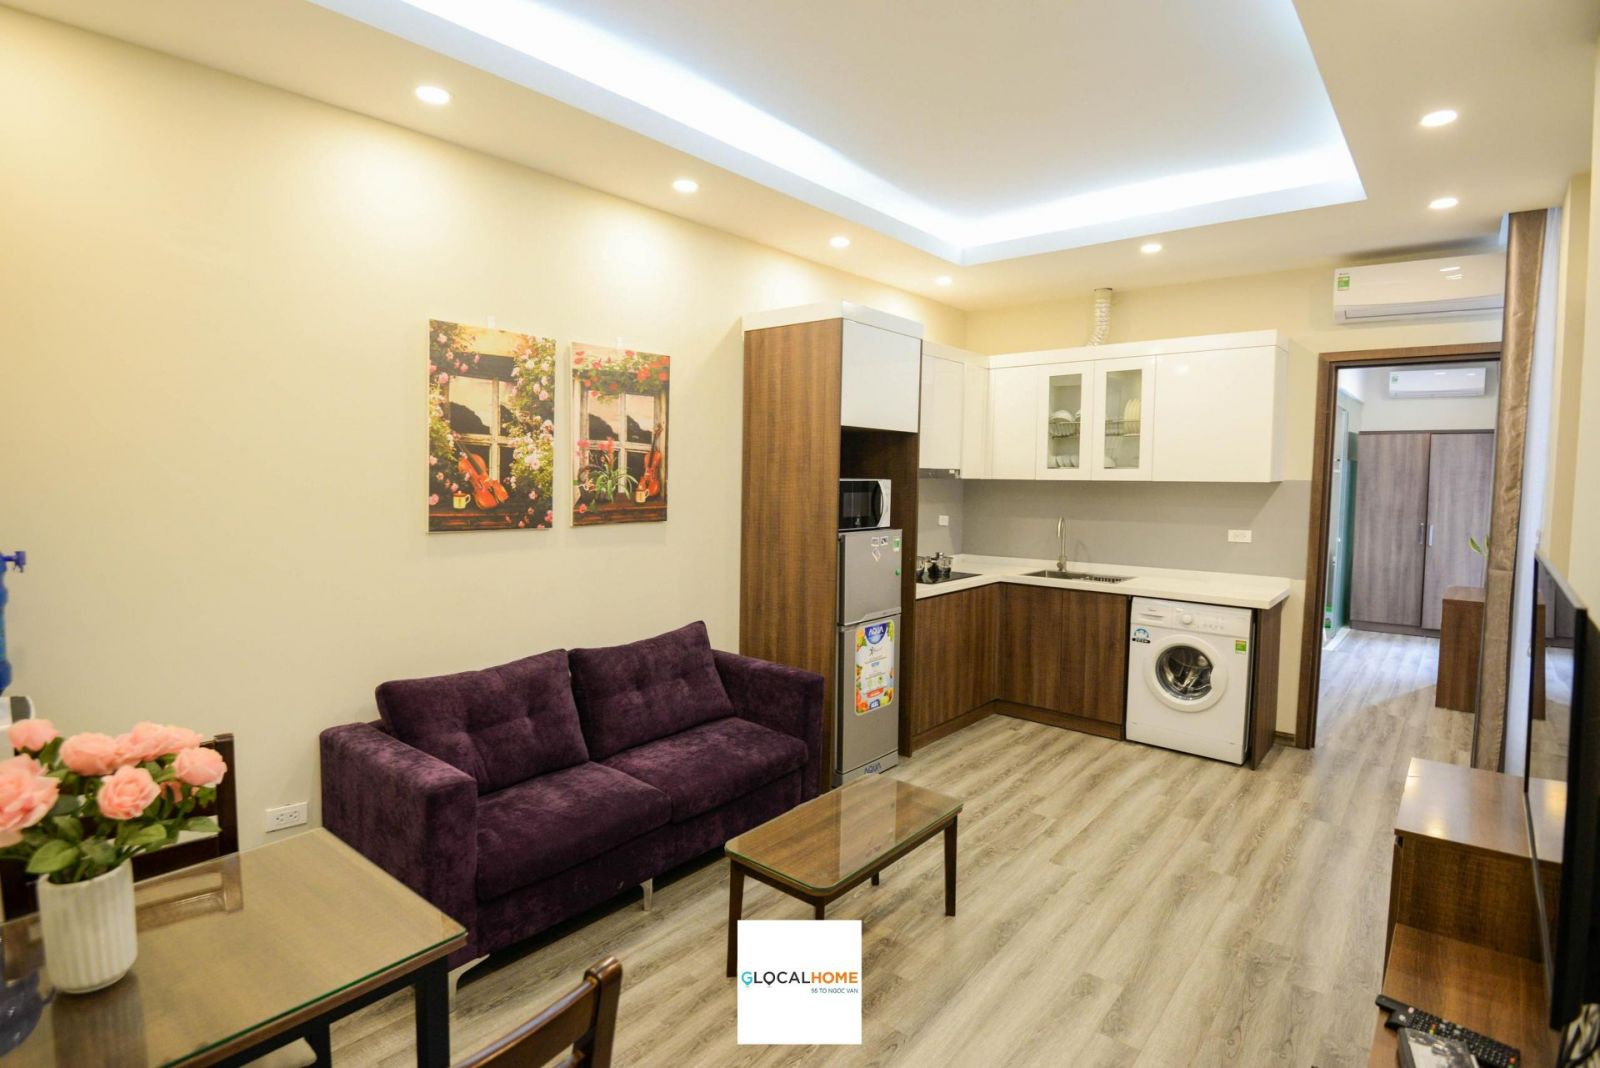 1 bedroom apartment with modern design, full facilities in Nhat Chieu